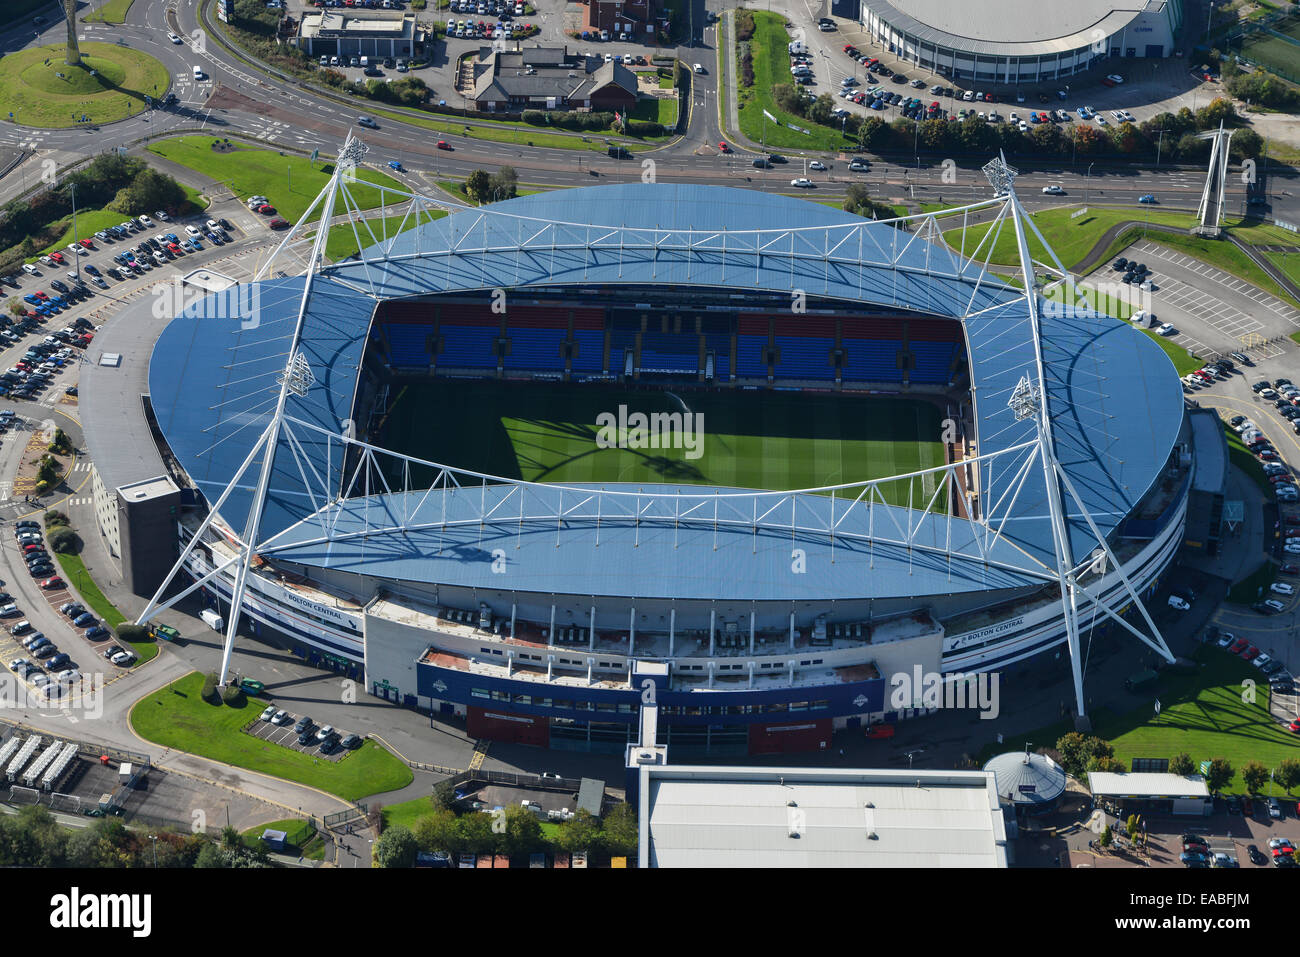 An aerial view of the Macron Stadium, home of Bolton Wanderers football club - Stock Image